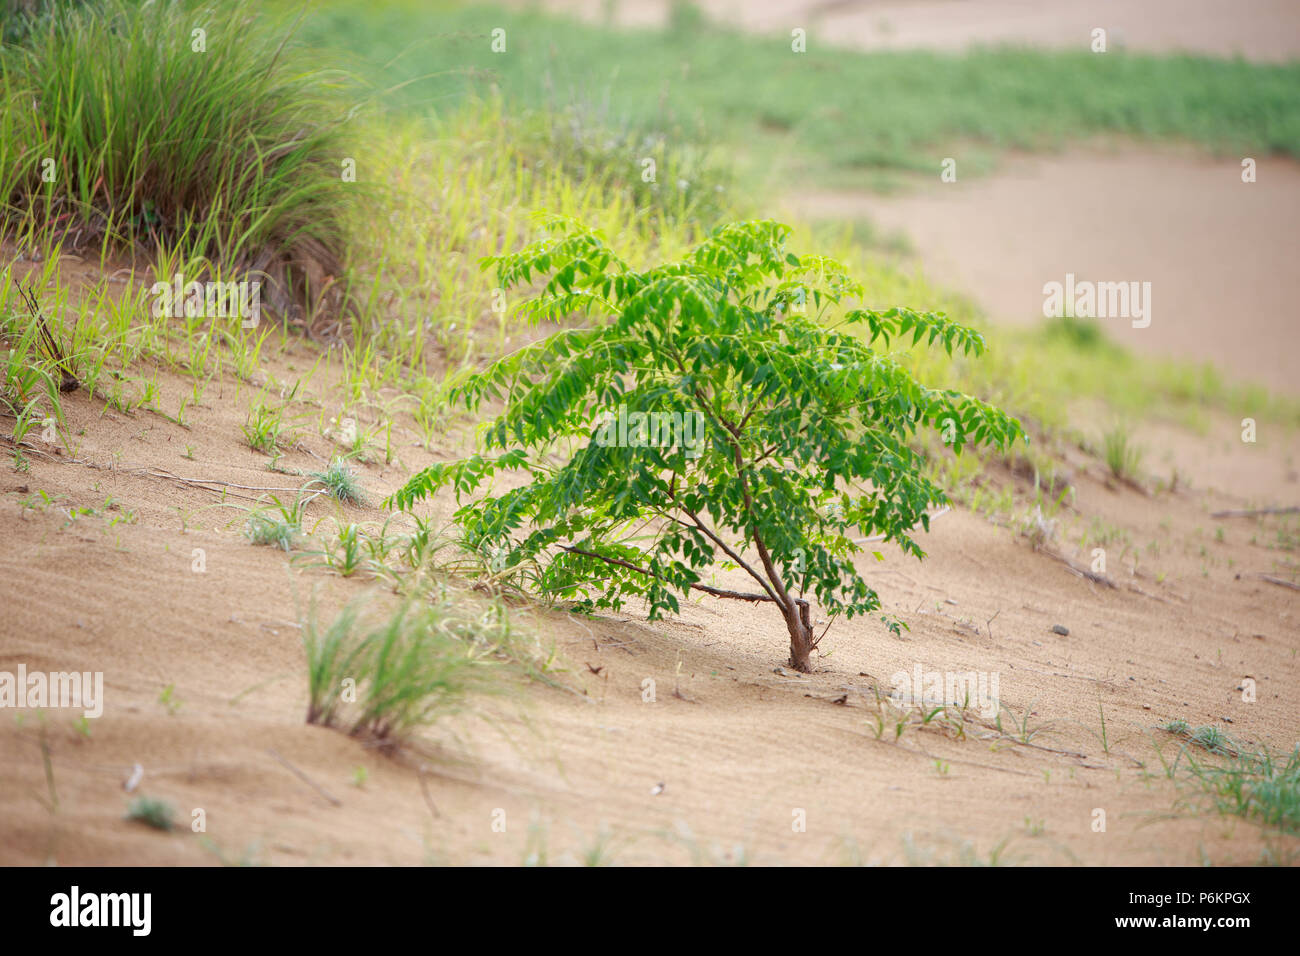 Small tree growing in sand with assorted grasses - Stock Image